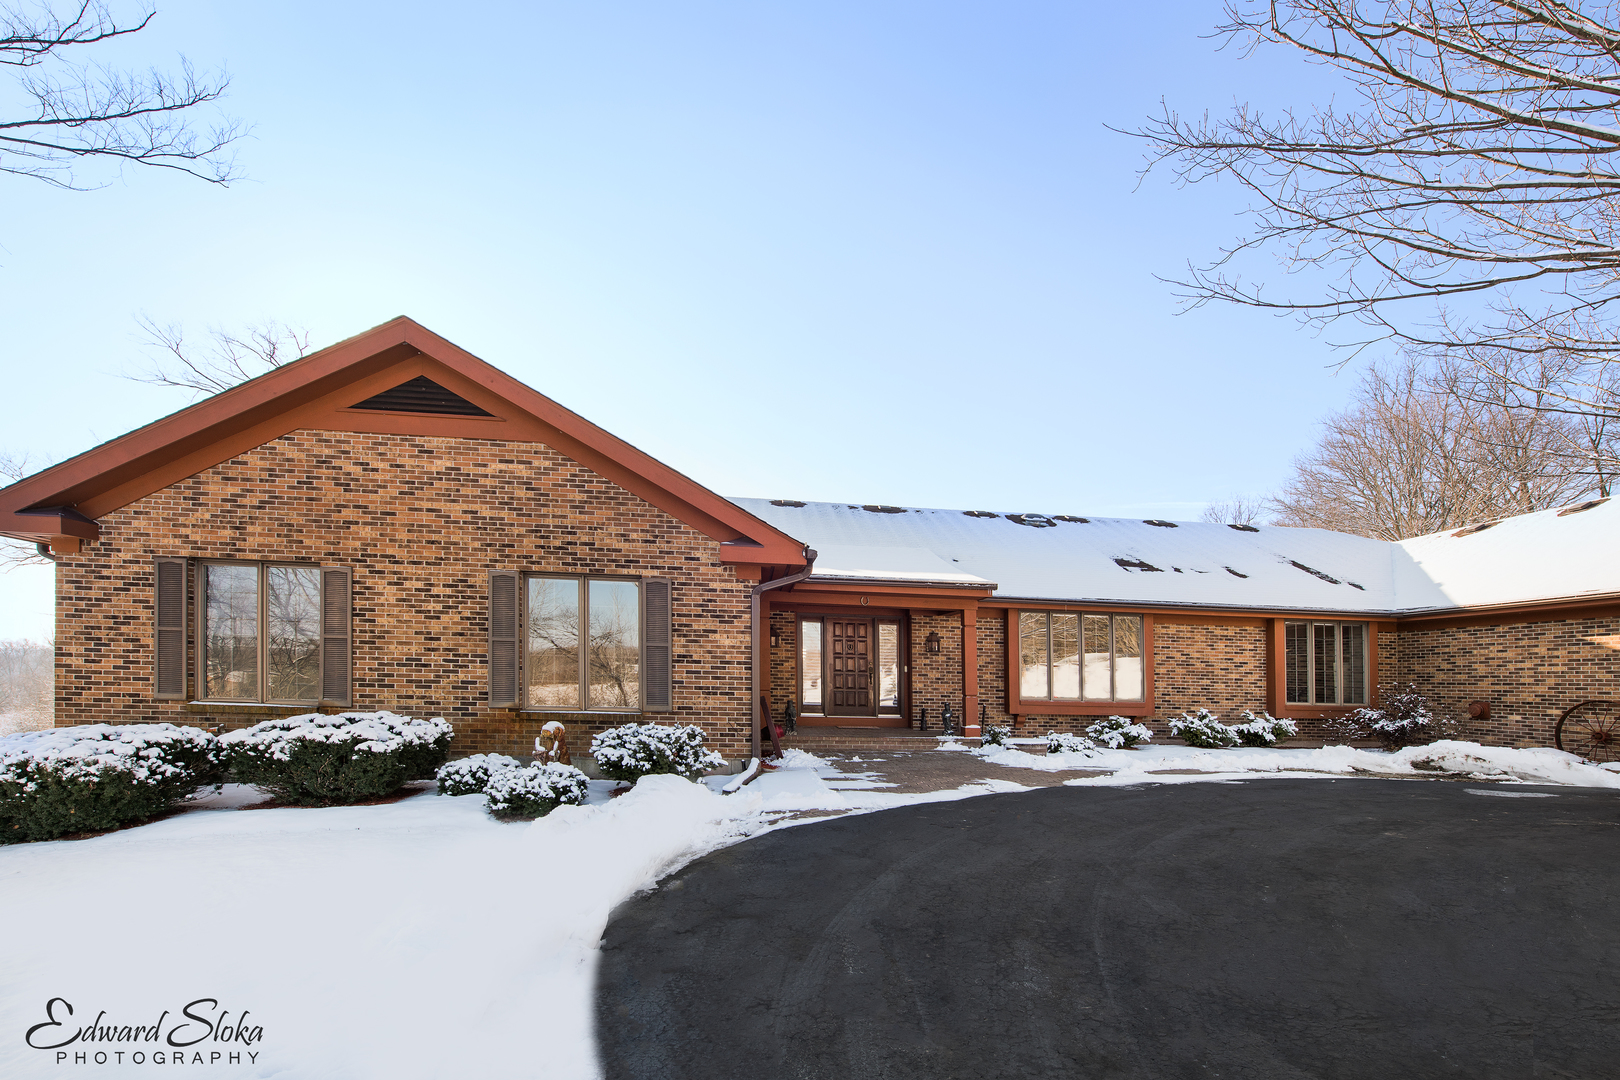 cherry valley jewish singles Find 9 listings related to crystal ridge club in watchung on ypcom see reviews, photos, directions, phone numbers and more for crystal ridge club locations in.